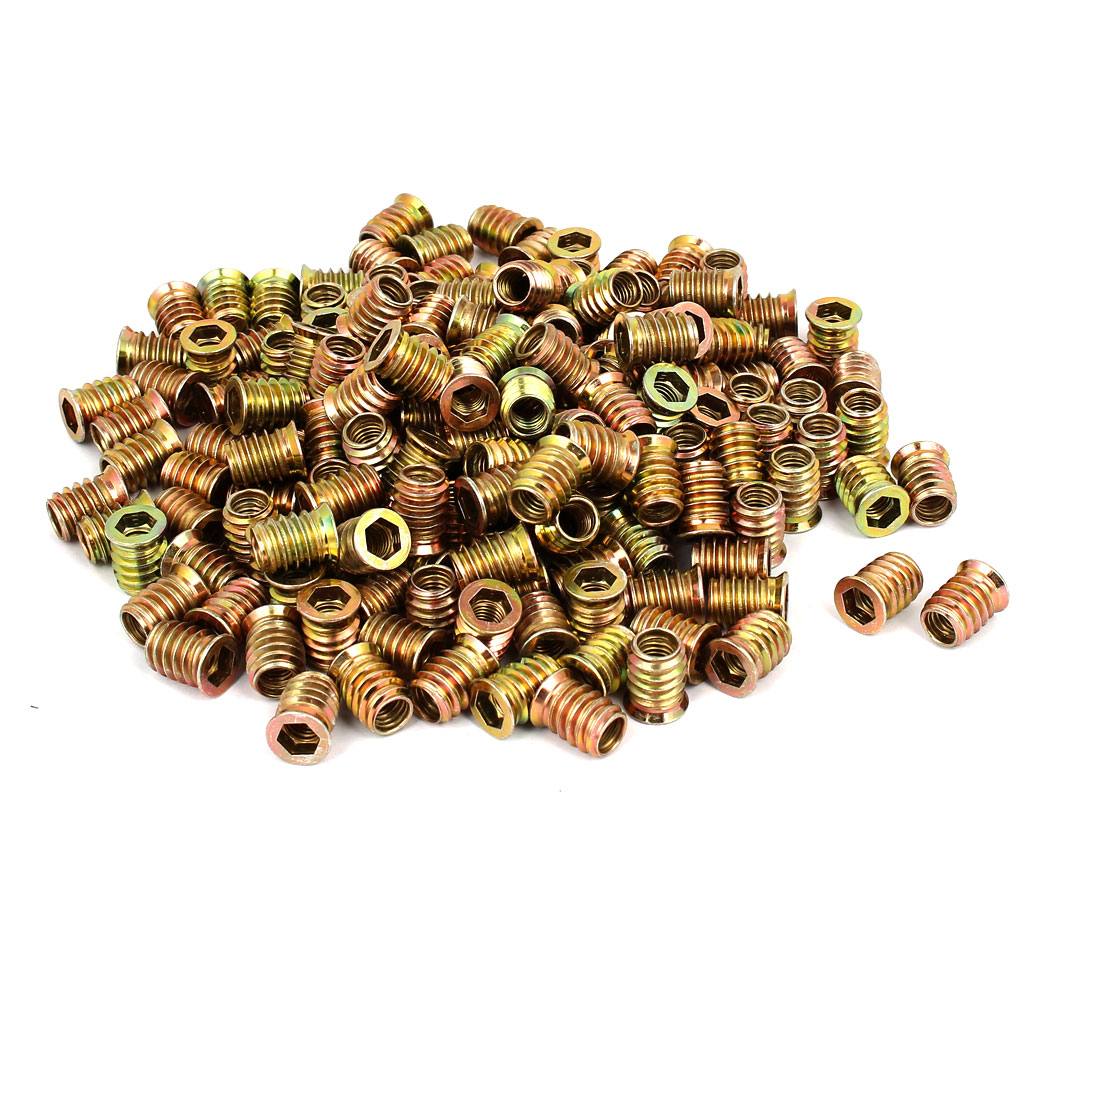 8mm x 17mm Wood Furniture Insert Interface E-Nut Hex Socket Nut Fitting 300PCS